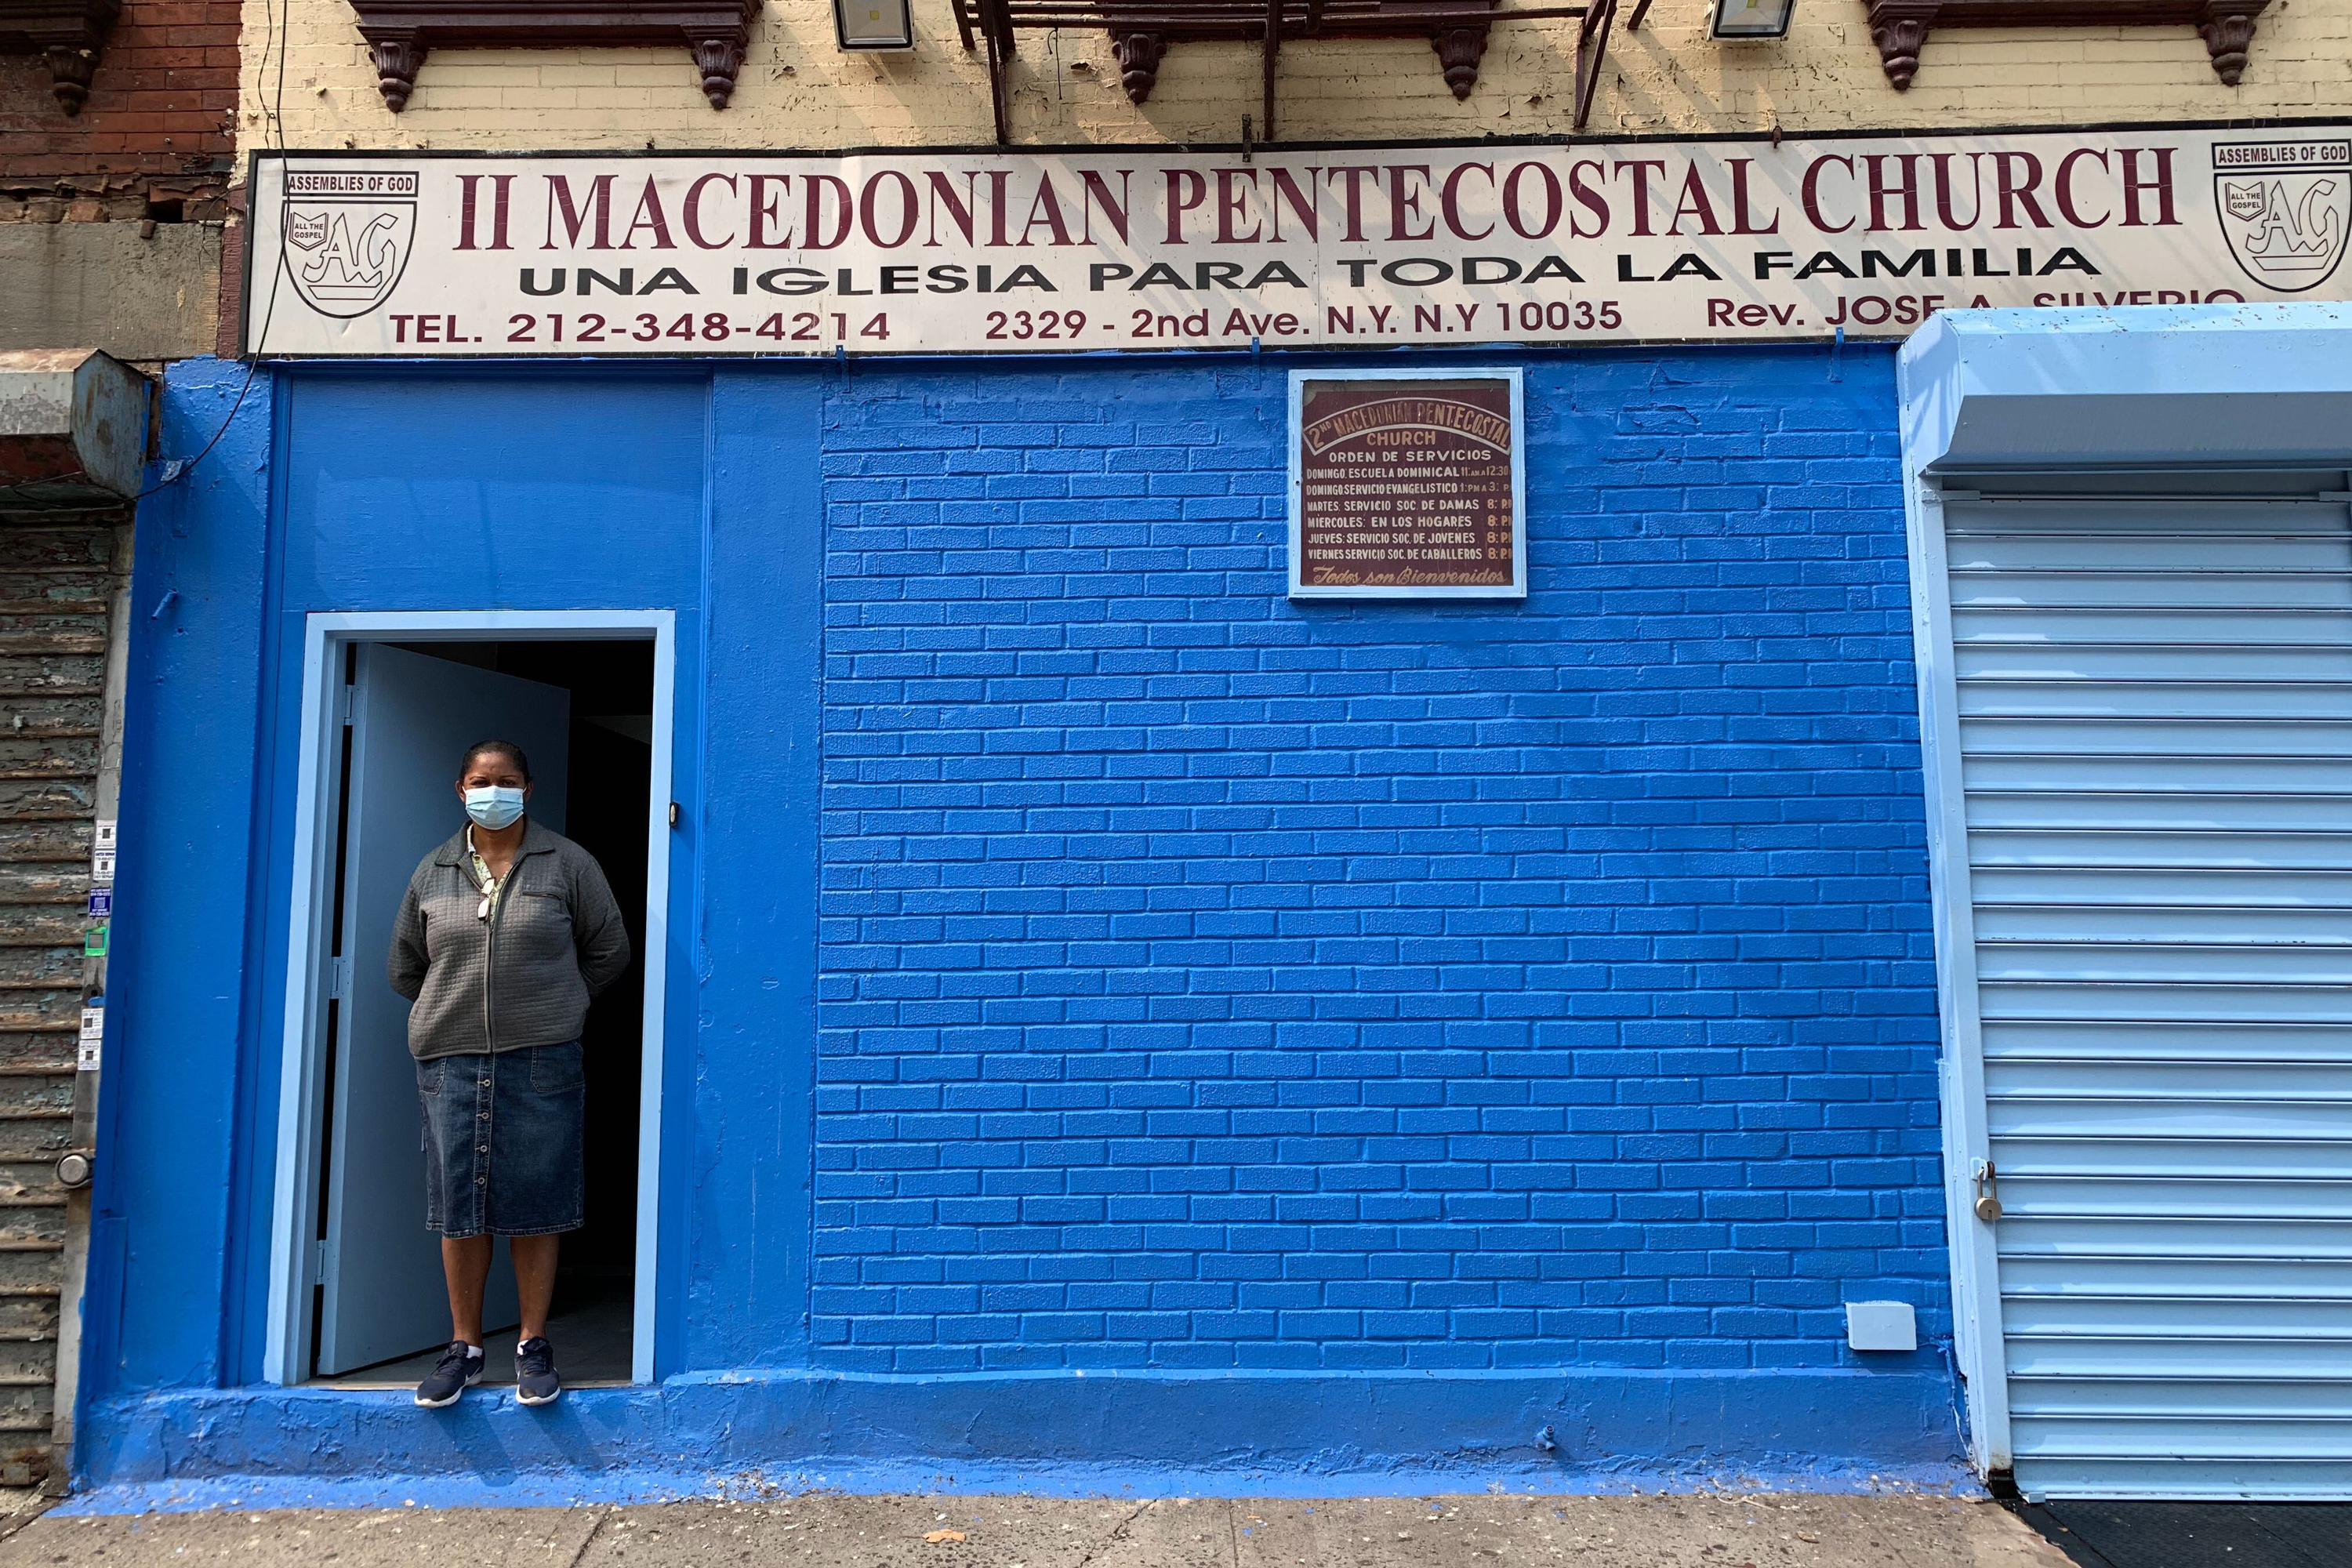 """""""This is our home. But we know we'll eventually be replaced by the subway, said Claribel Rivera, an official at II Macedonian Pentecostal Church on Second Avenue."""